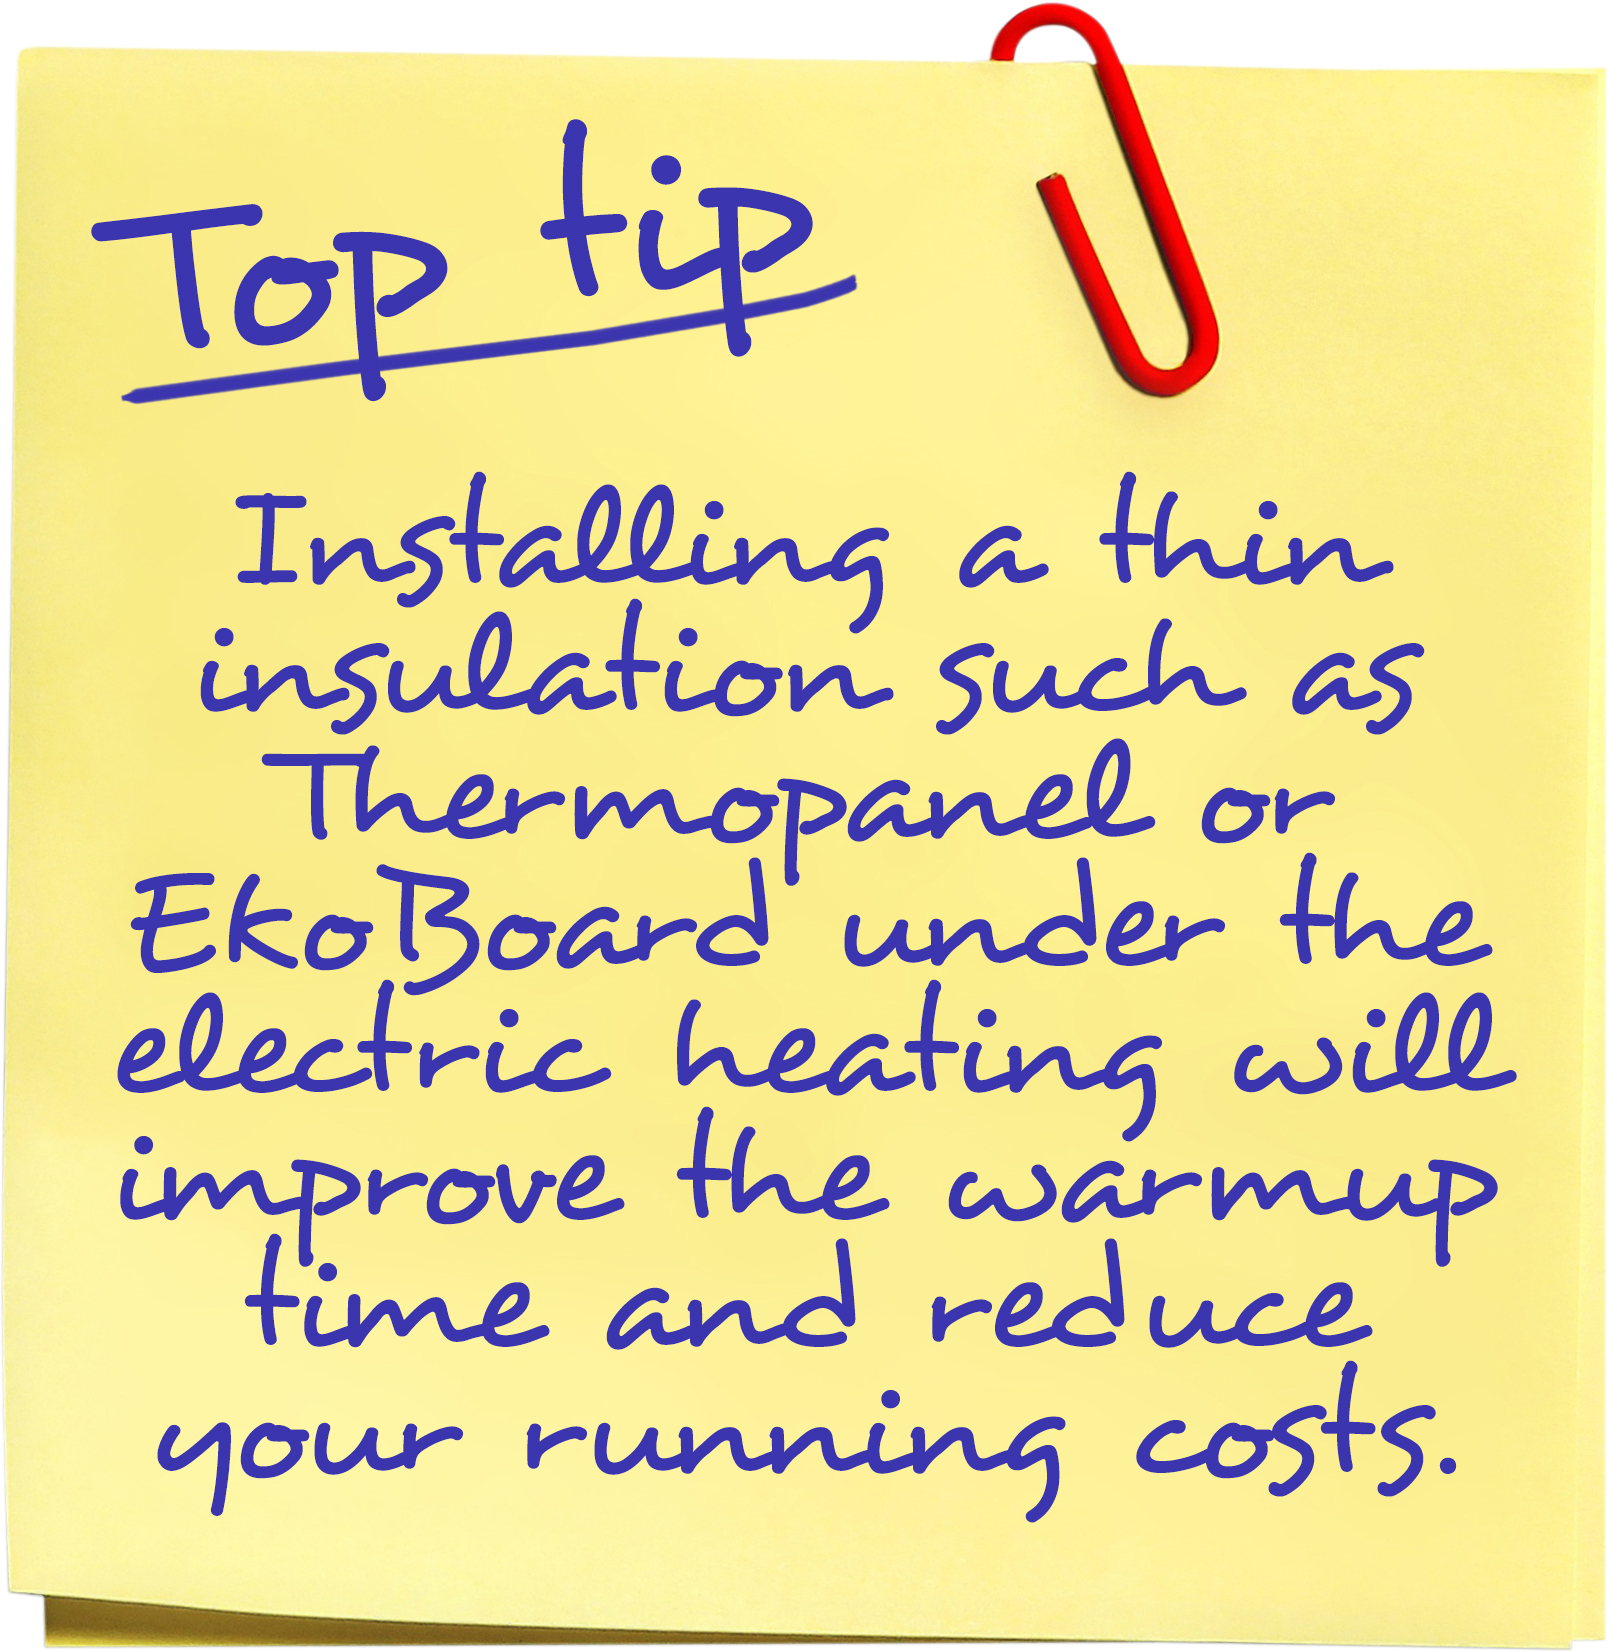 Installing a thin insulation such as Thermopanel or EkoBoard under the electric heating will improve the warmup time and reduce your running costs.